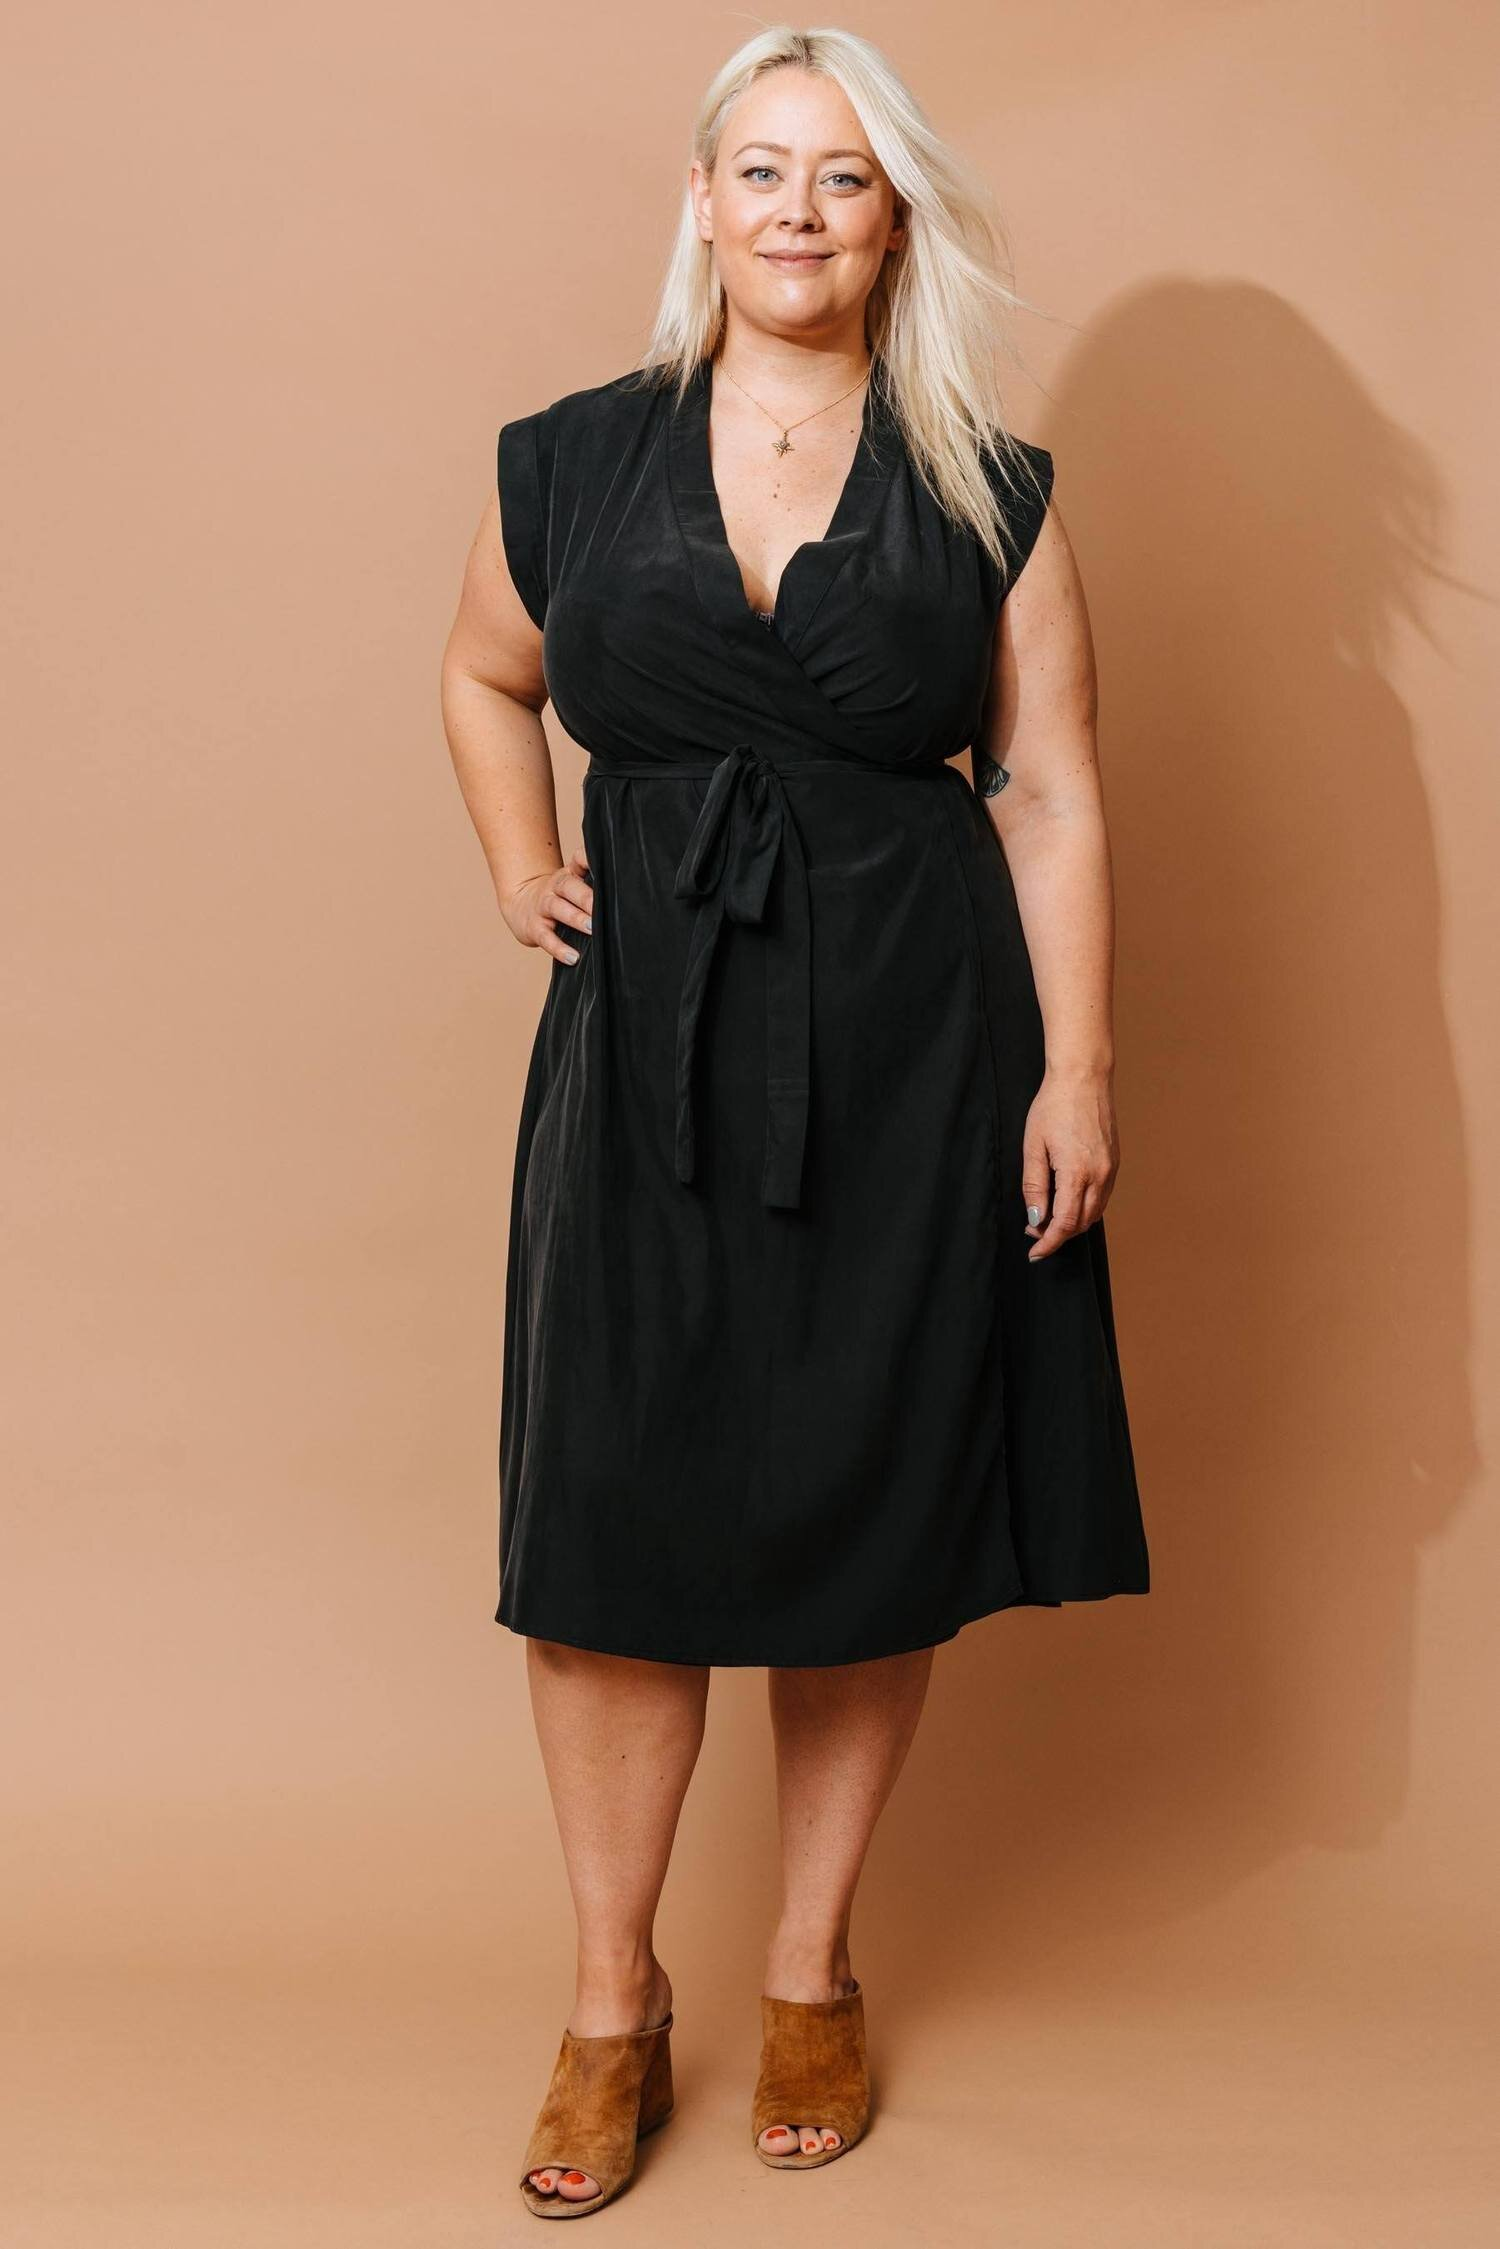 altar-black-wrap-dress-apparel-altar-603331_1500x.jpg